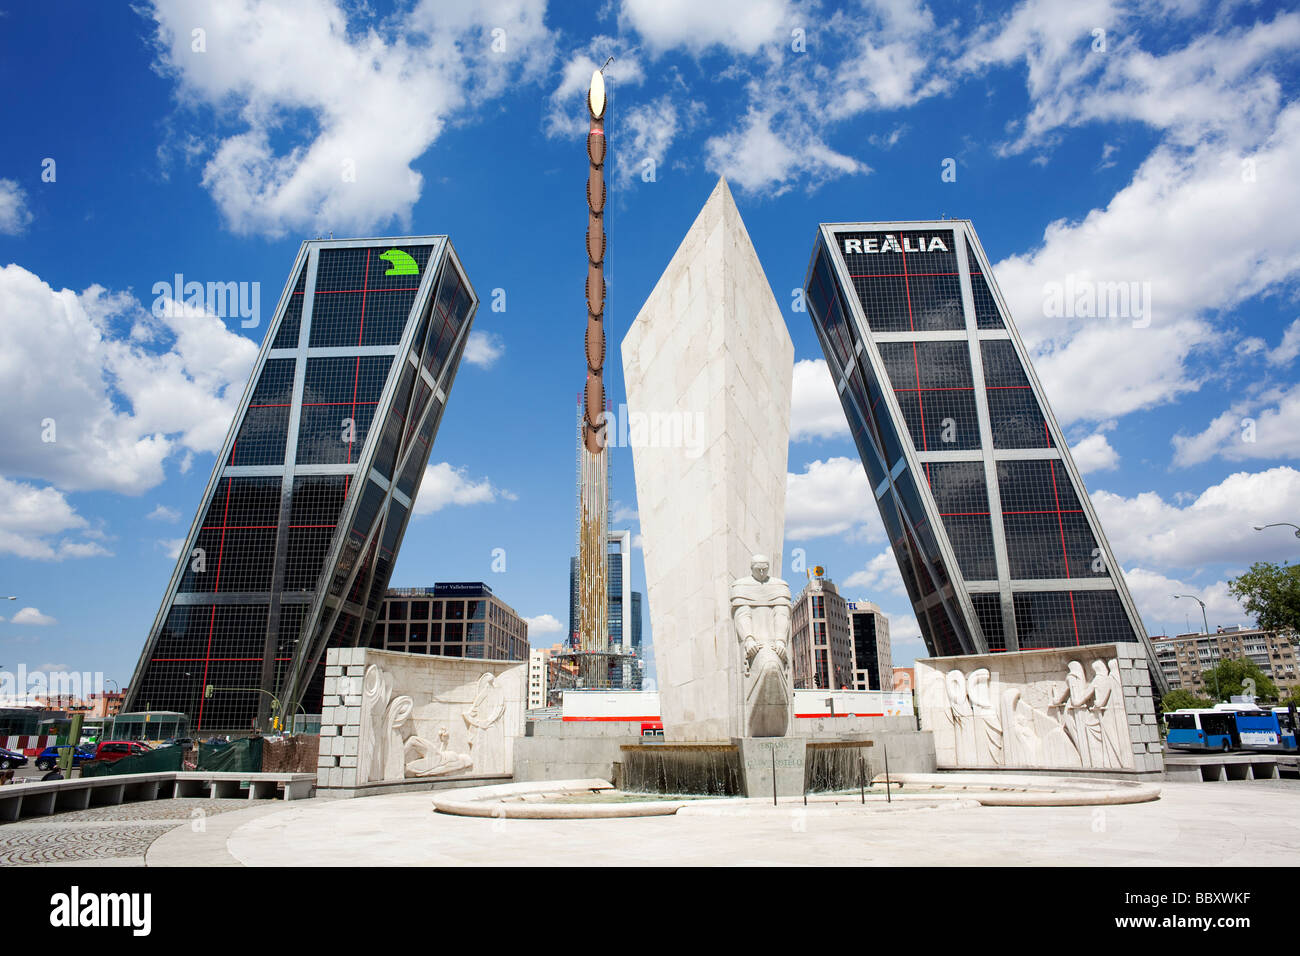 Plaza de Castilla Financial district, Madrid, Spain - Stock Image